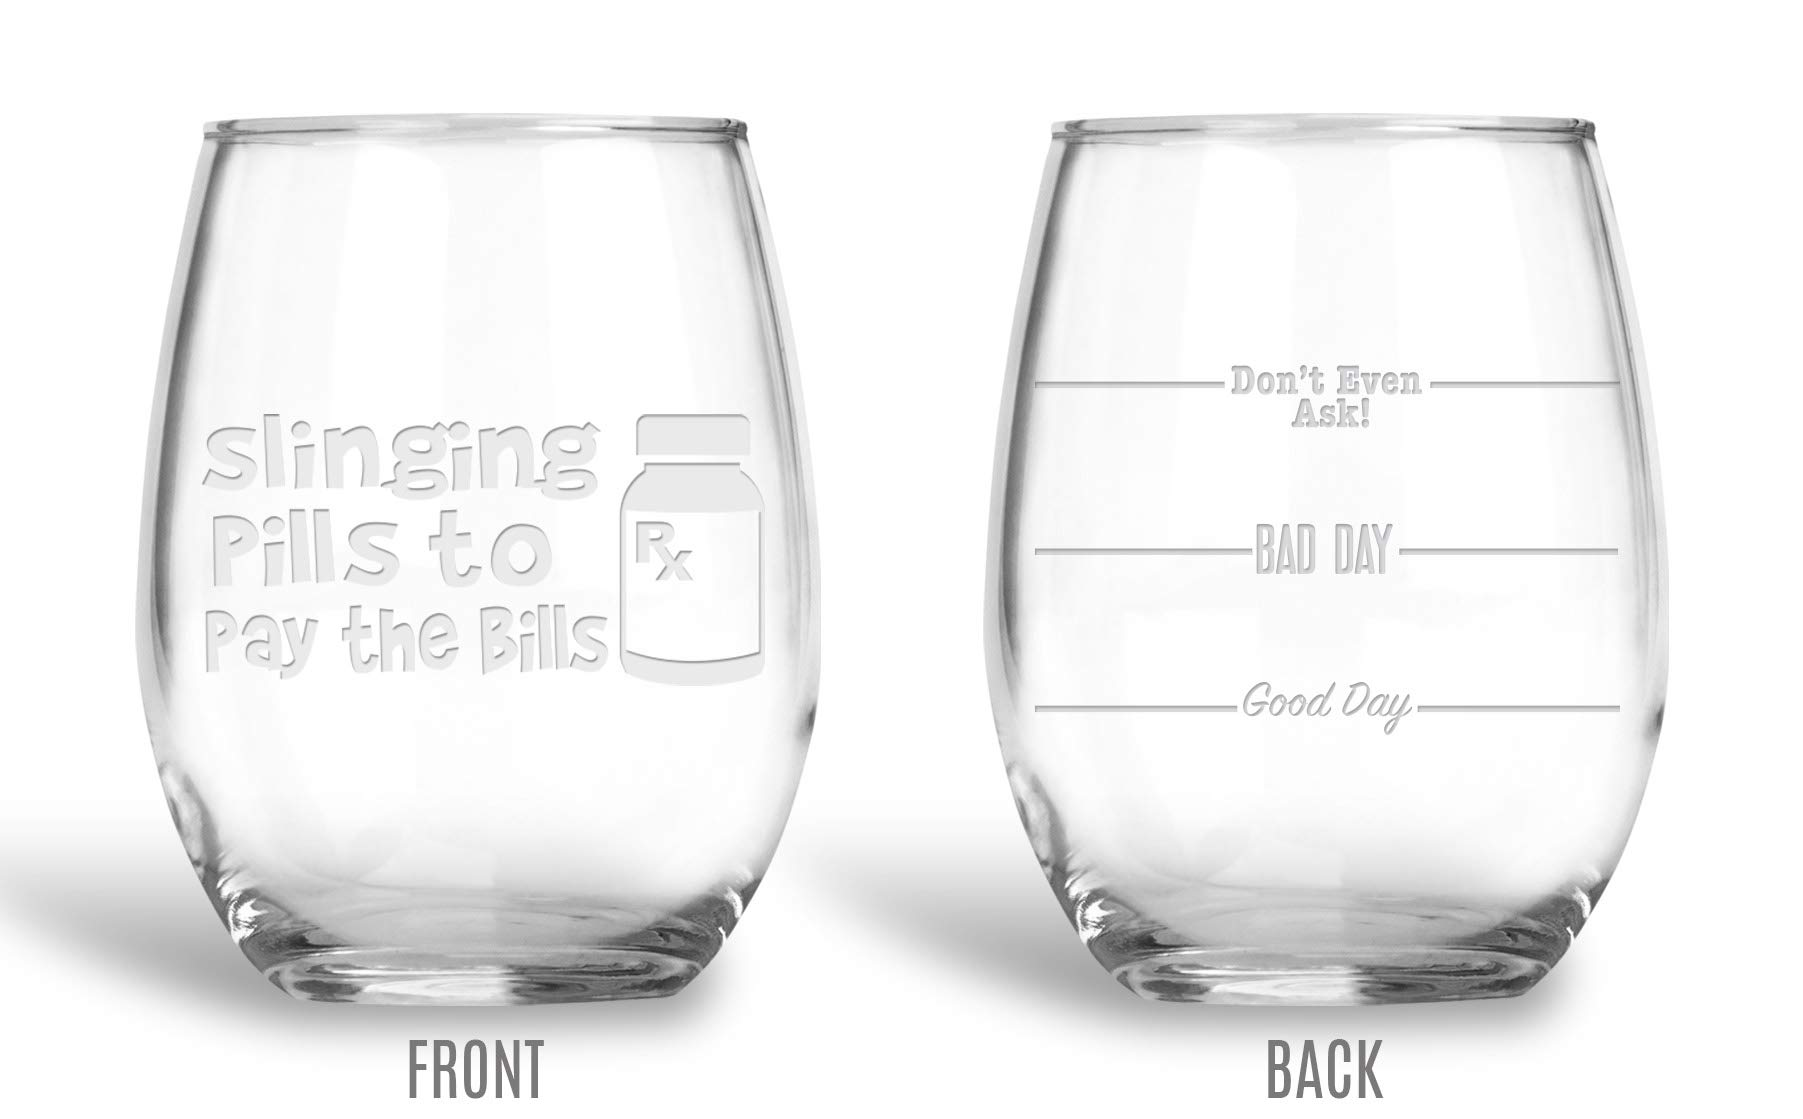 BadBananas Slinging Pills To Pay The Bills Pharmacist, Pharmacy Tech, 21 oz Engraved Large Stemless Wine Glass with Free Engraved Coaster - Funny Coworker Graduation Gift Glasses